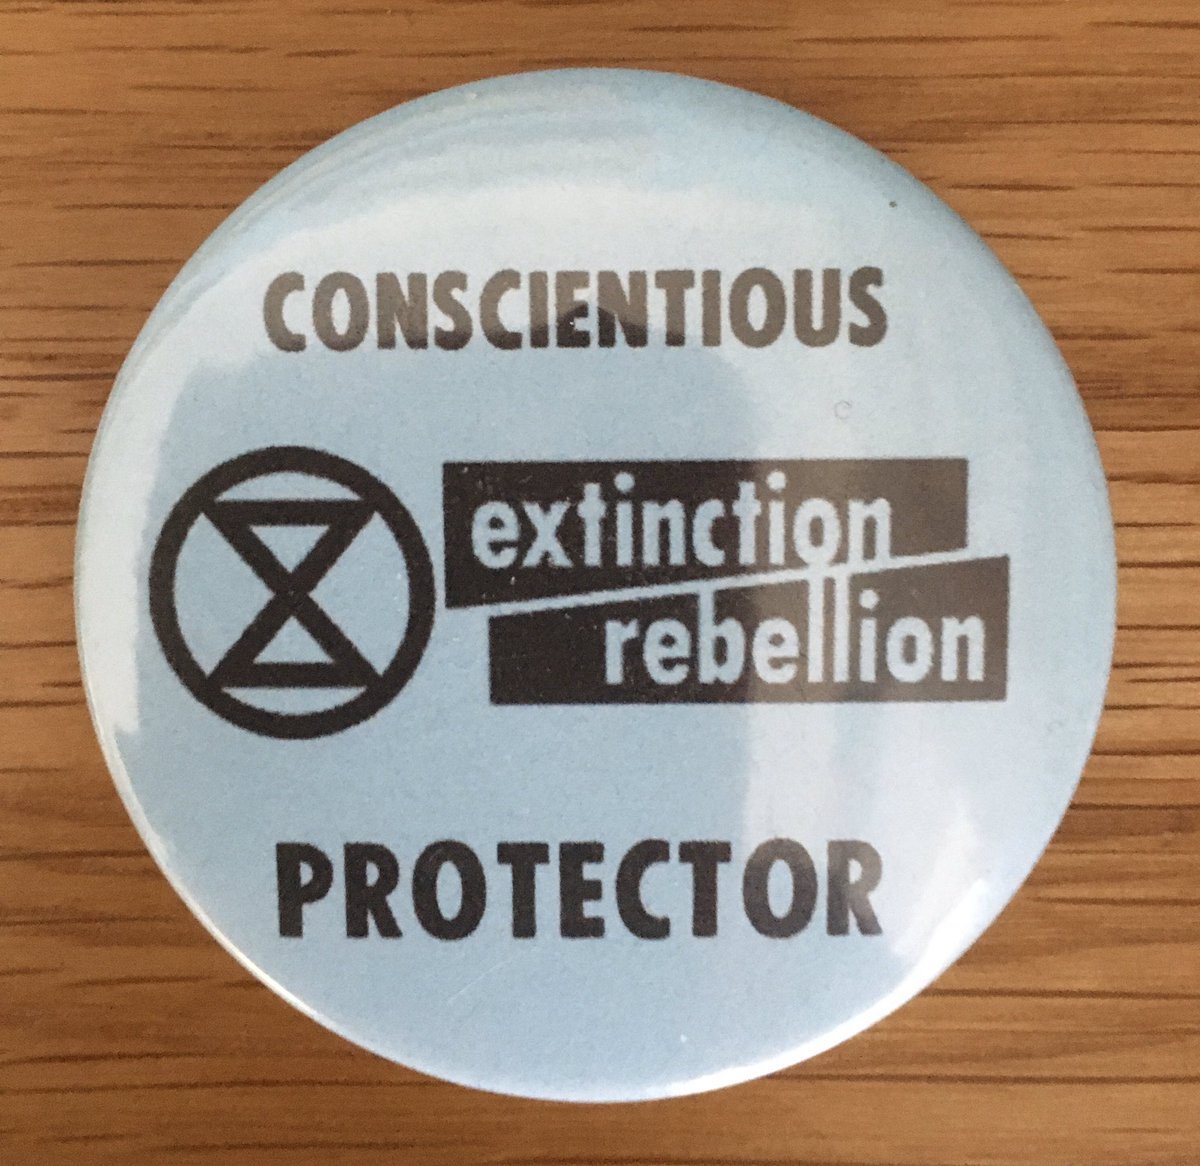 ⁉️@yourUCSU @chiuni A question as #ChiUni #MatureStudent.I understand attending Meeting @ChichesterXR last night that place could not be found for #Chichester #ExtinctionRebellion at 2019 #FreshersFair,surely more prescient than local #Freemasons!How can #ER ensure 2020 presence?